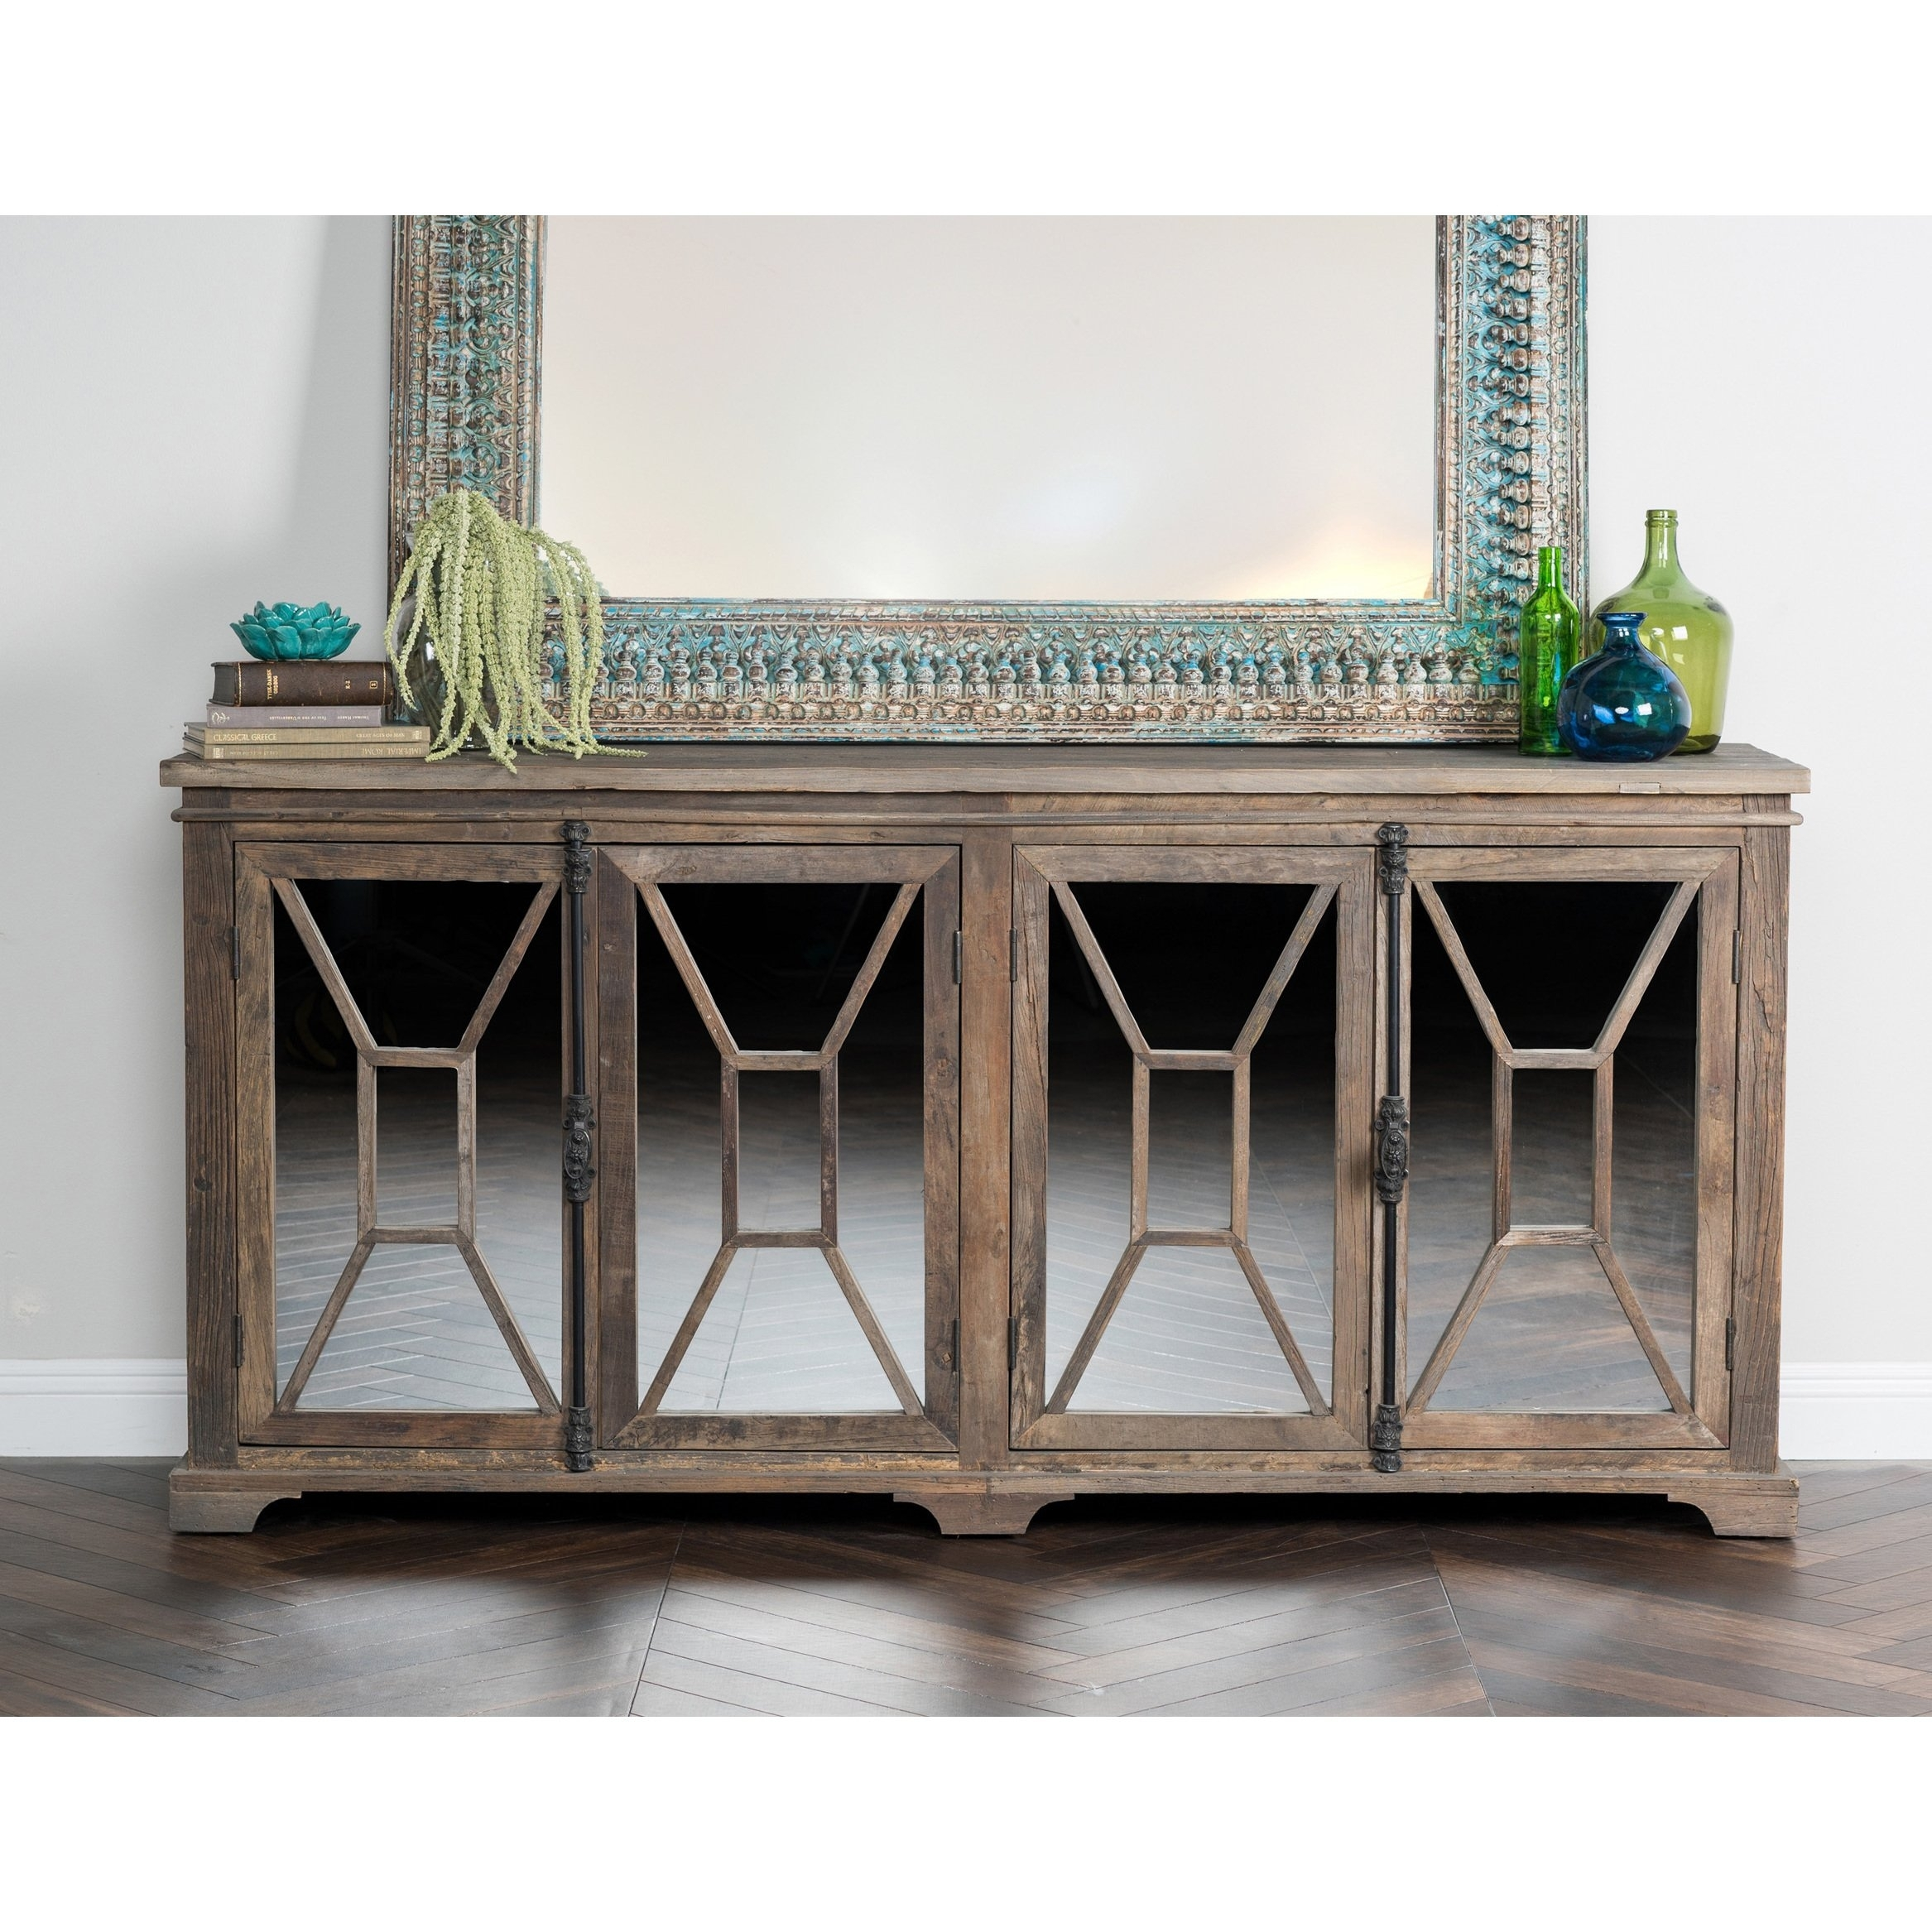 Shop Bradley Reclaimed Wood Mirrored 78-Inch Sideboardkosas Home throughout Reclaimed Pine Turquoise 4-Door Sideboards (Image 21 of 30)